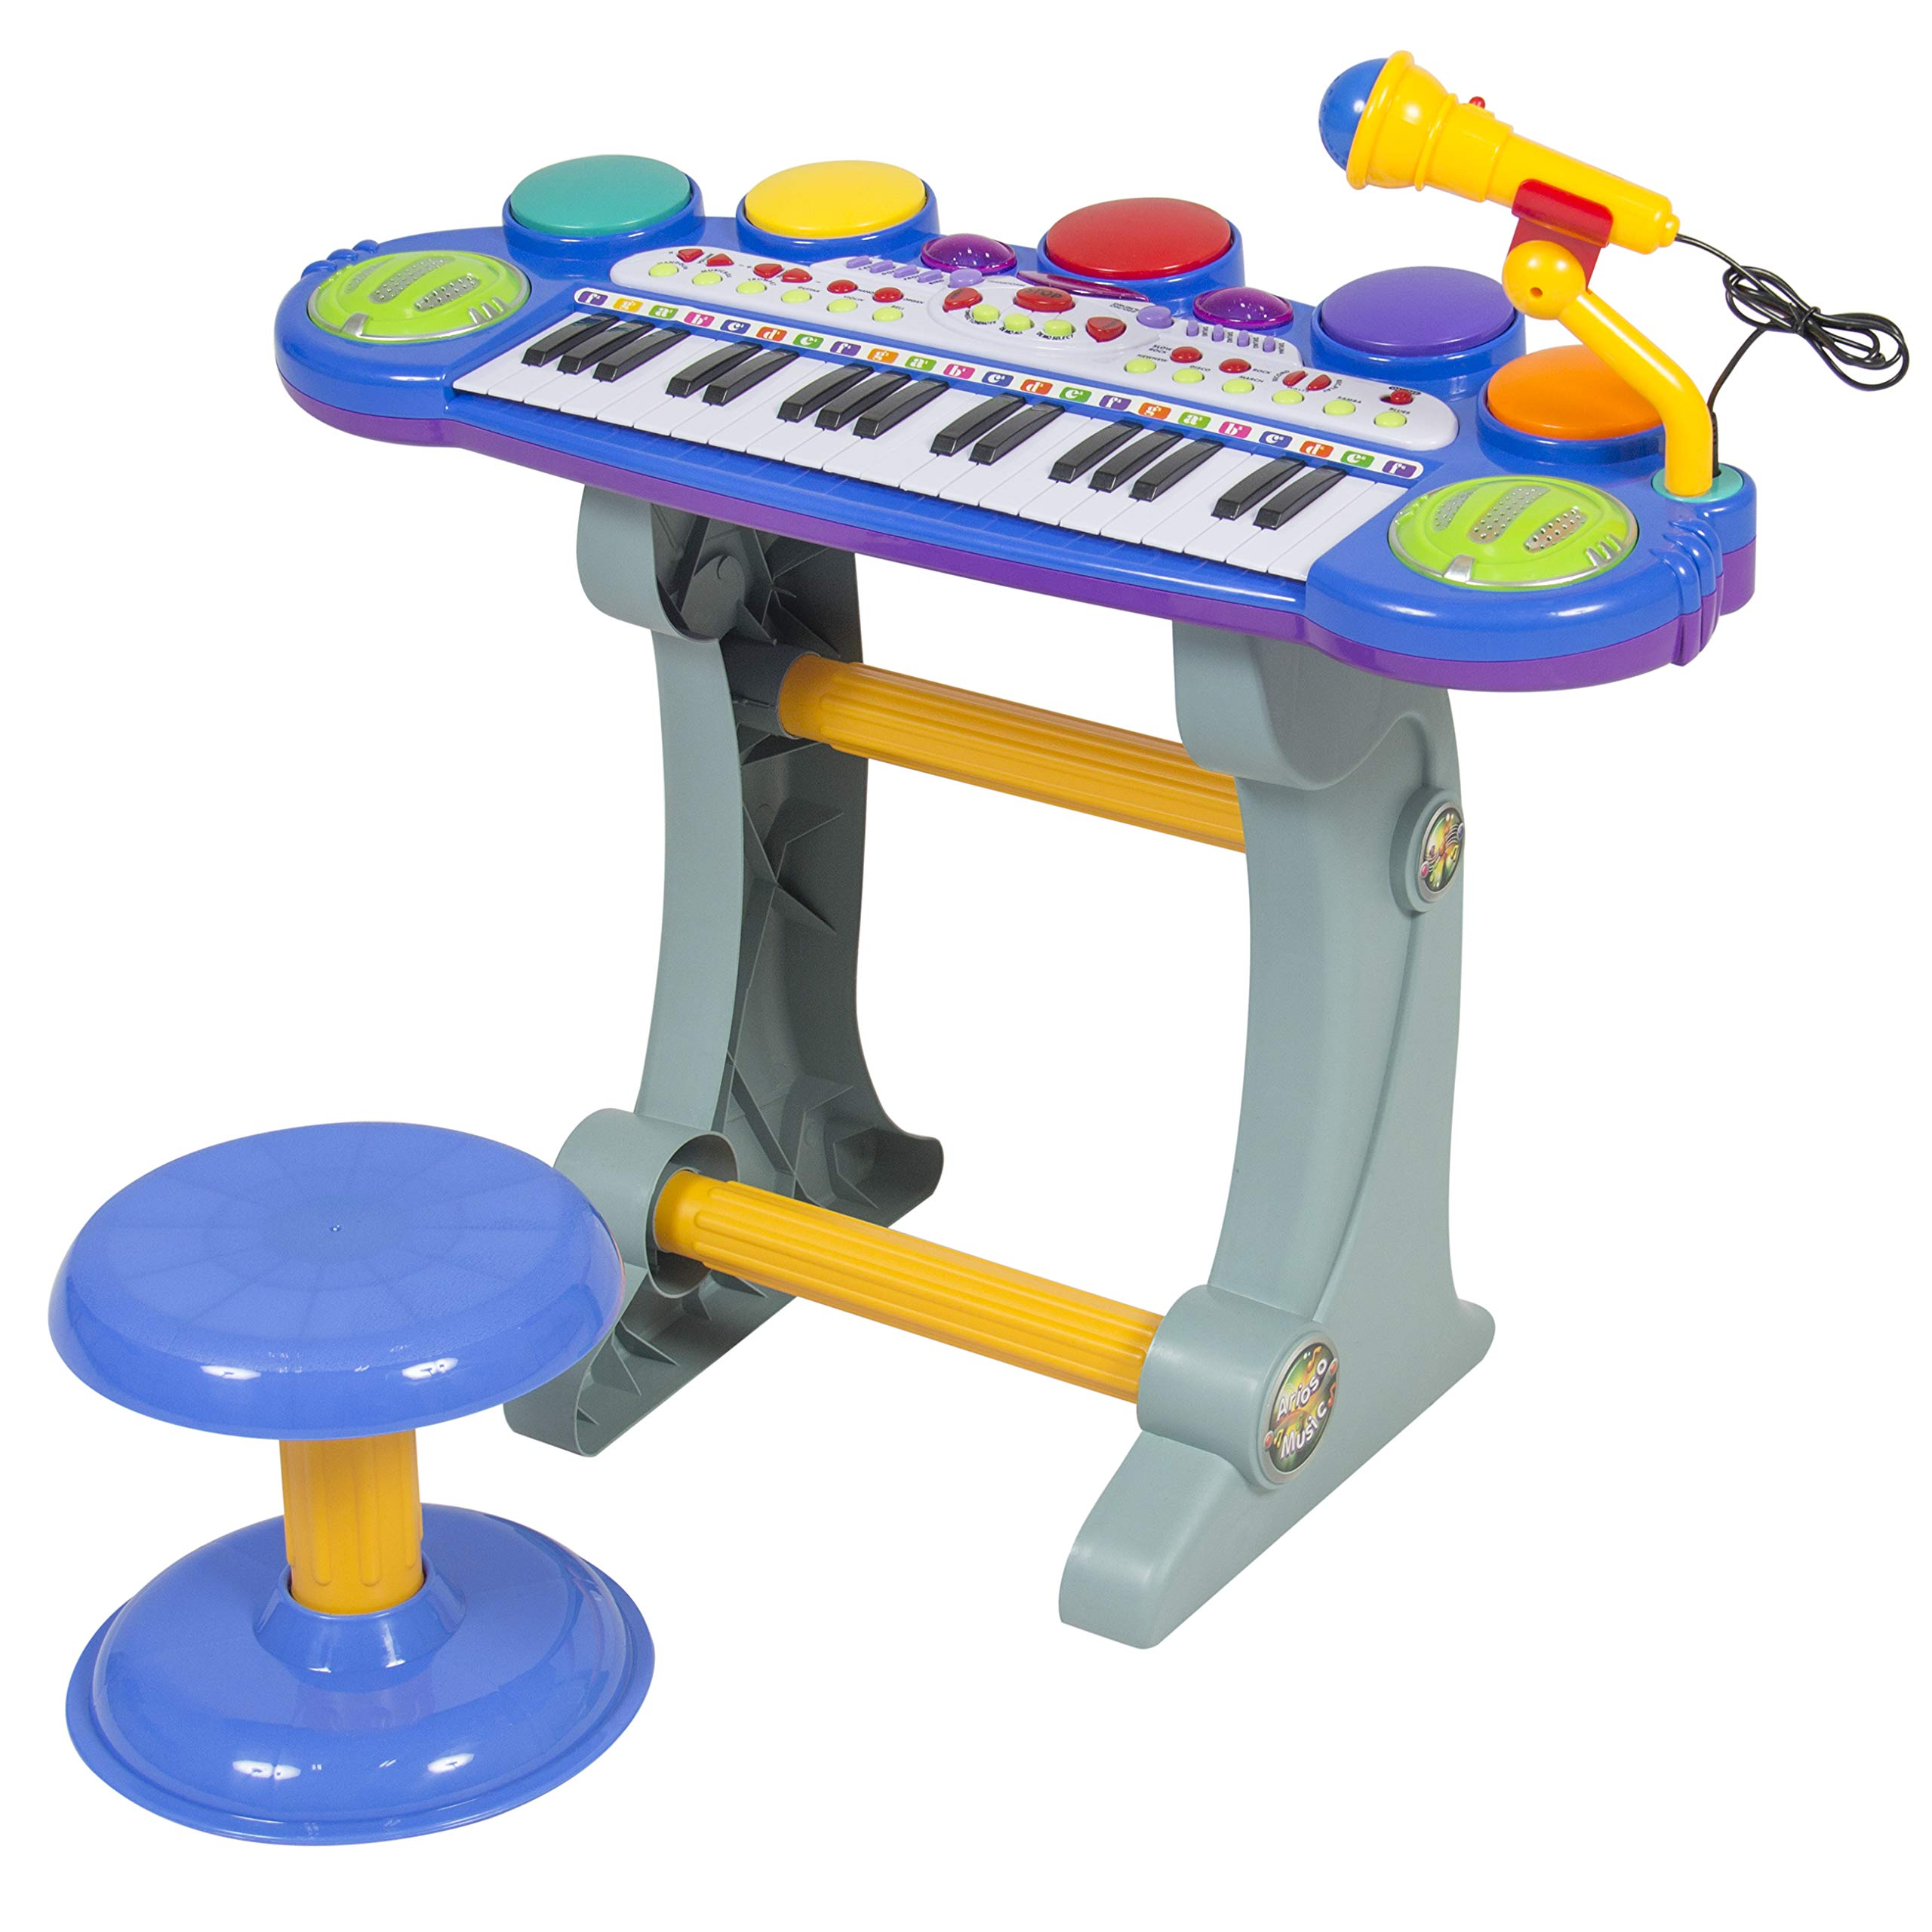 Best Choice Products 37-Key Kids Electronic Musical Instrument Piano Toy Keyboard w/ Record and Playback, Microphone, Synthesizer, Stool - Blue by Best Choice Products